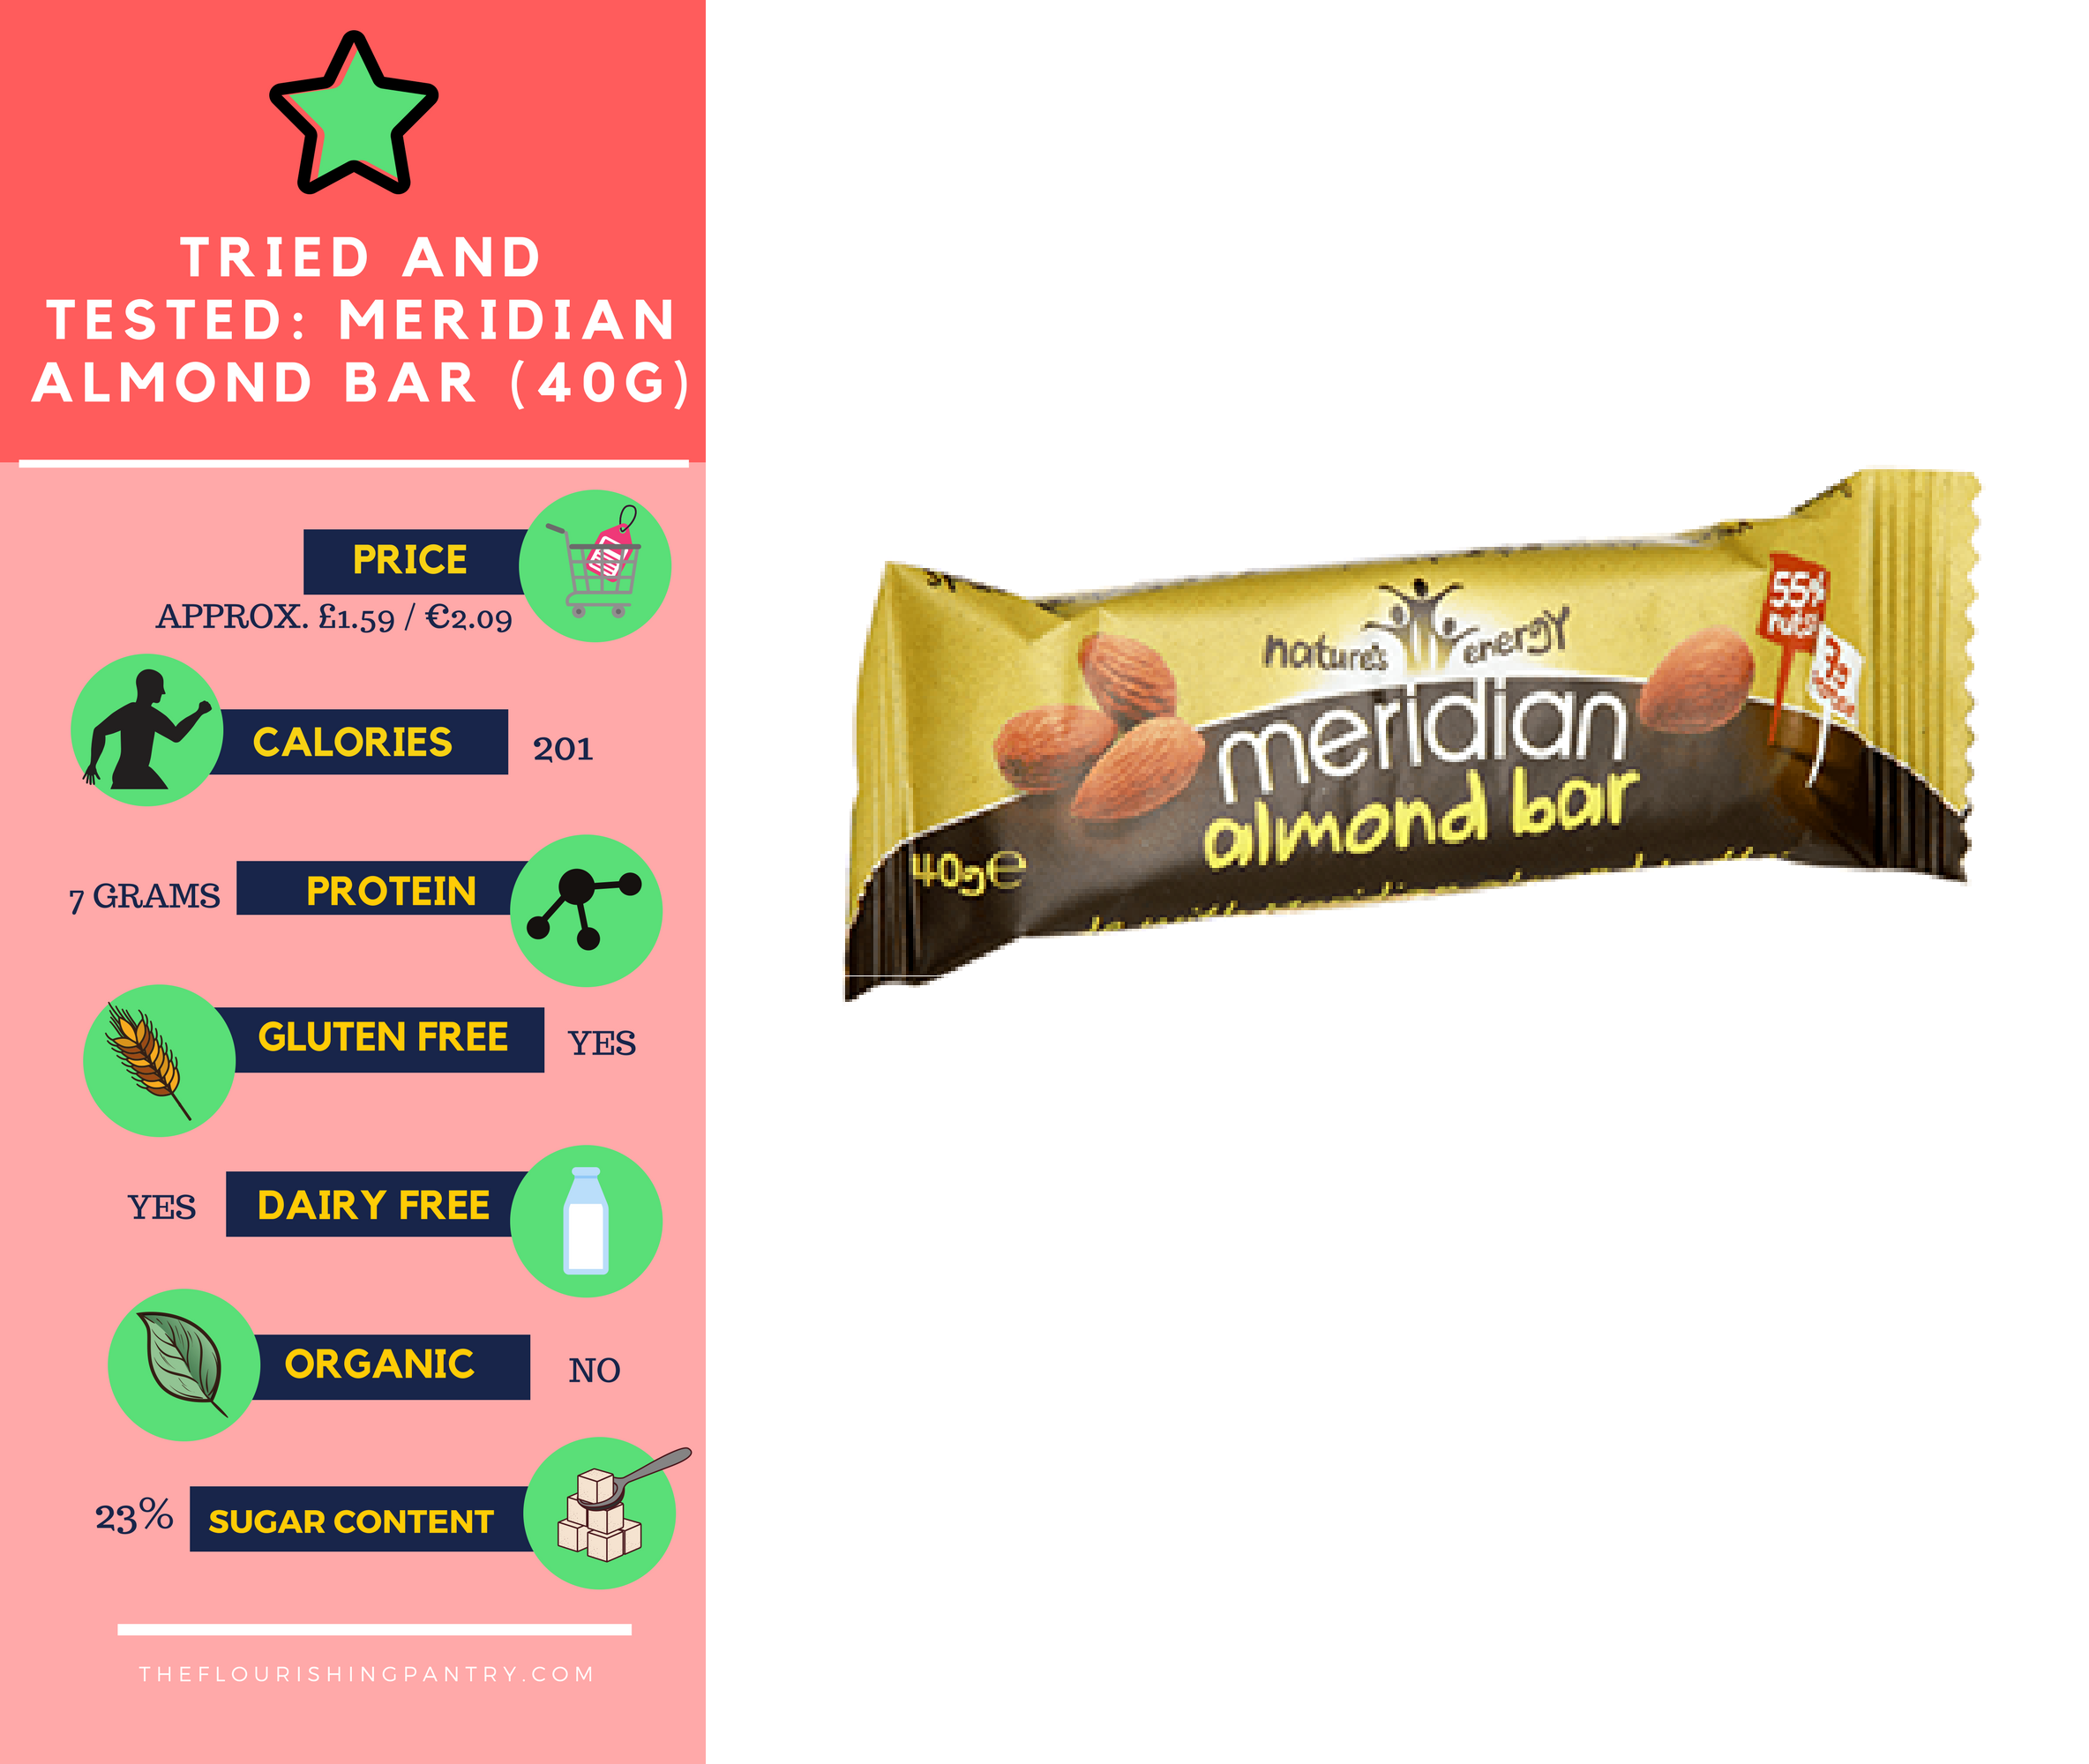 Meridian Almond Bar review | The Flourishing Pantry